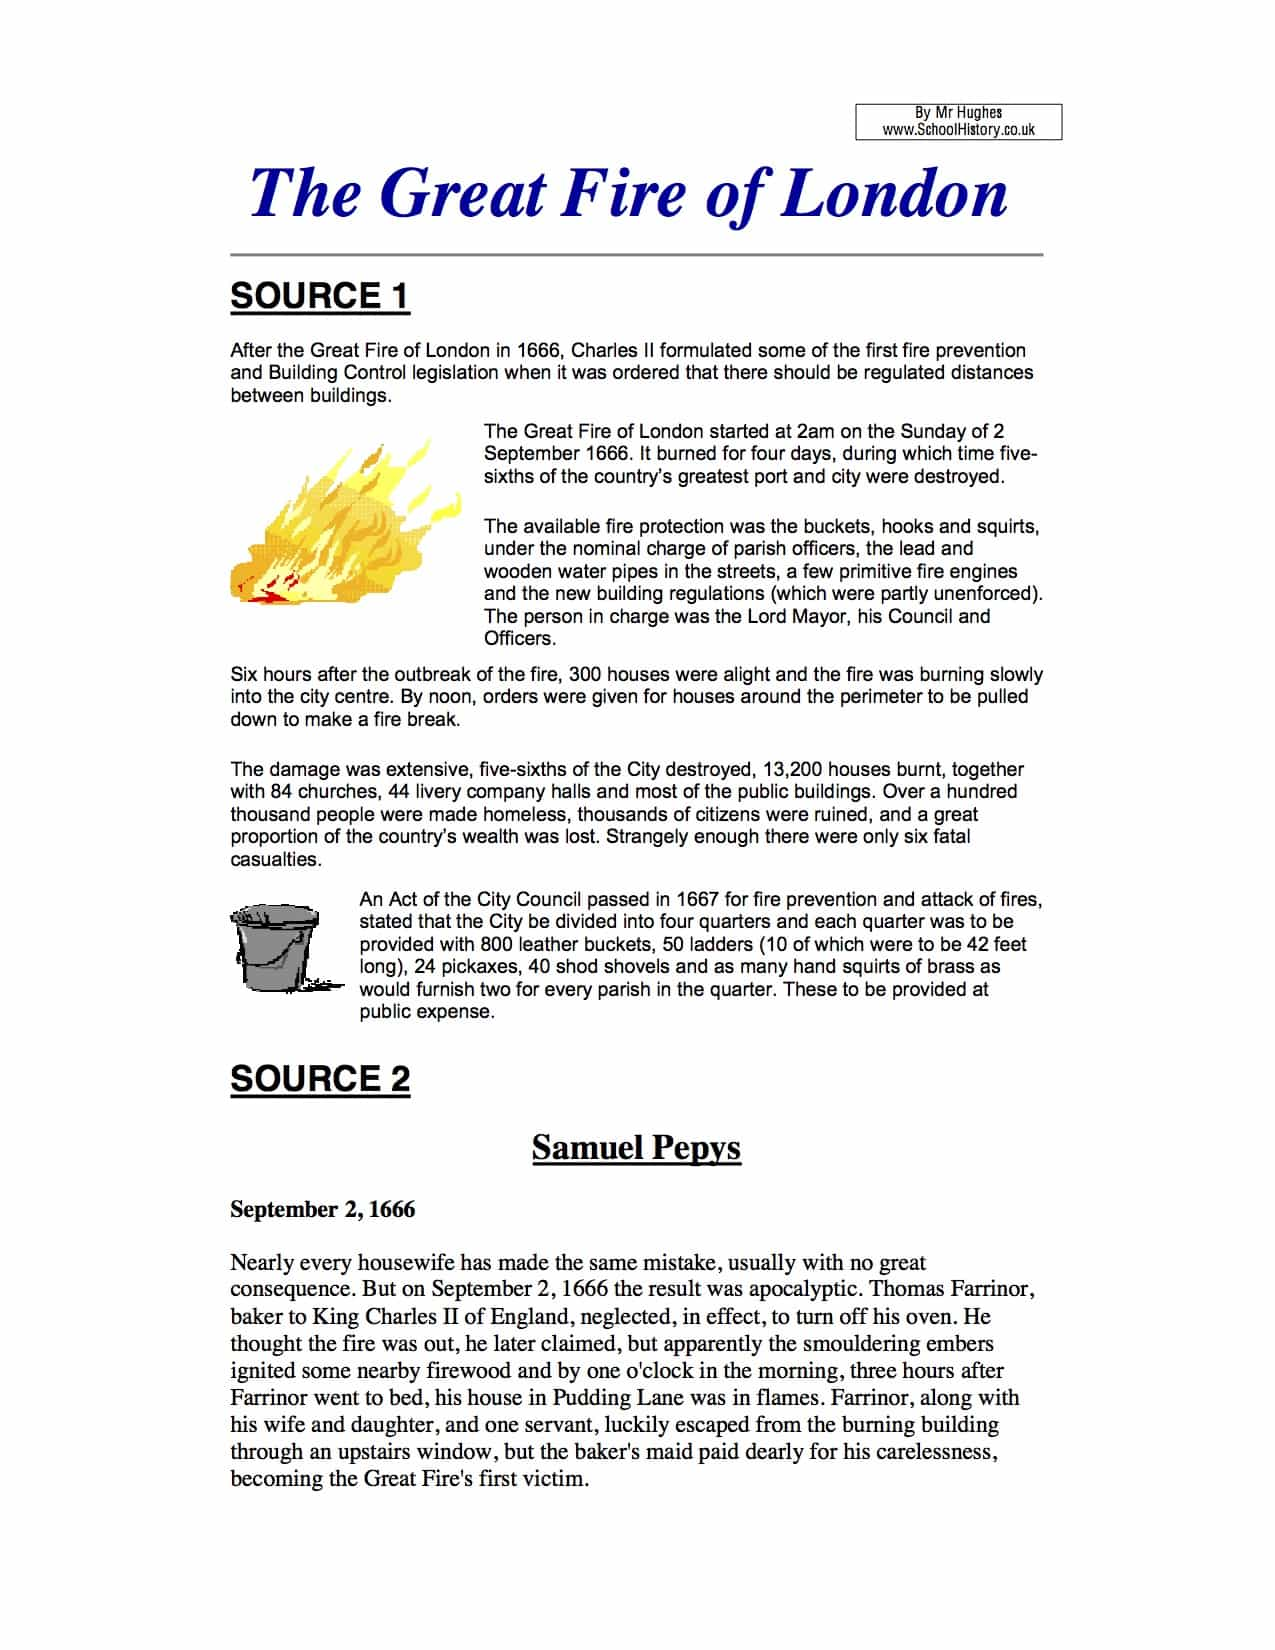 The Great Fire Of London Task Sources Worksheet